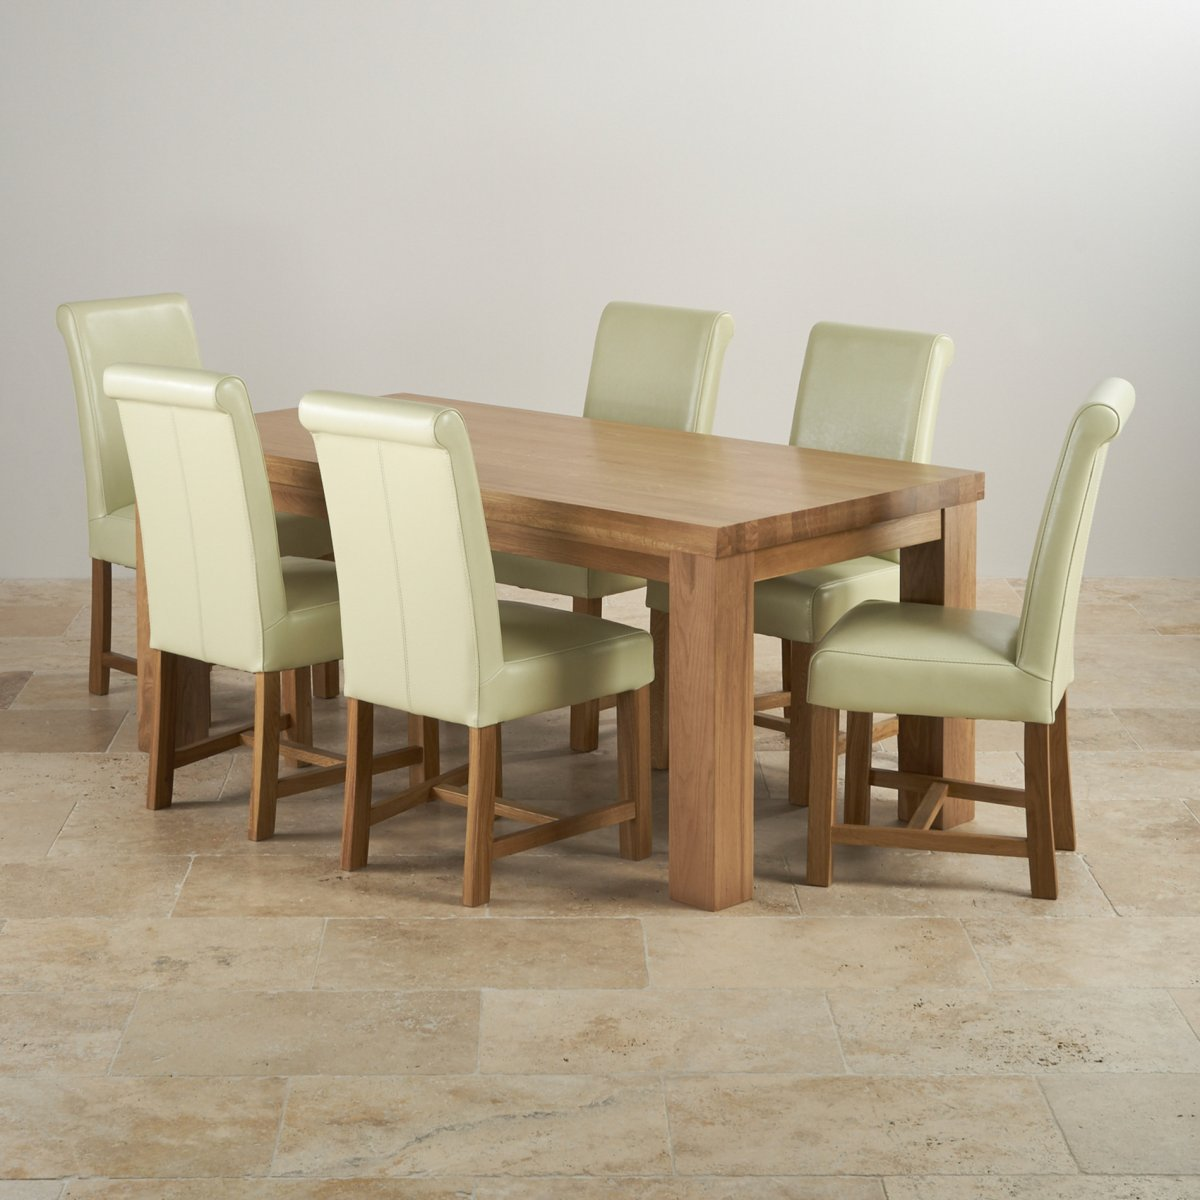 Oak dining tables contemporary chunky ft solid